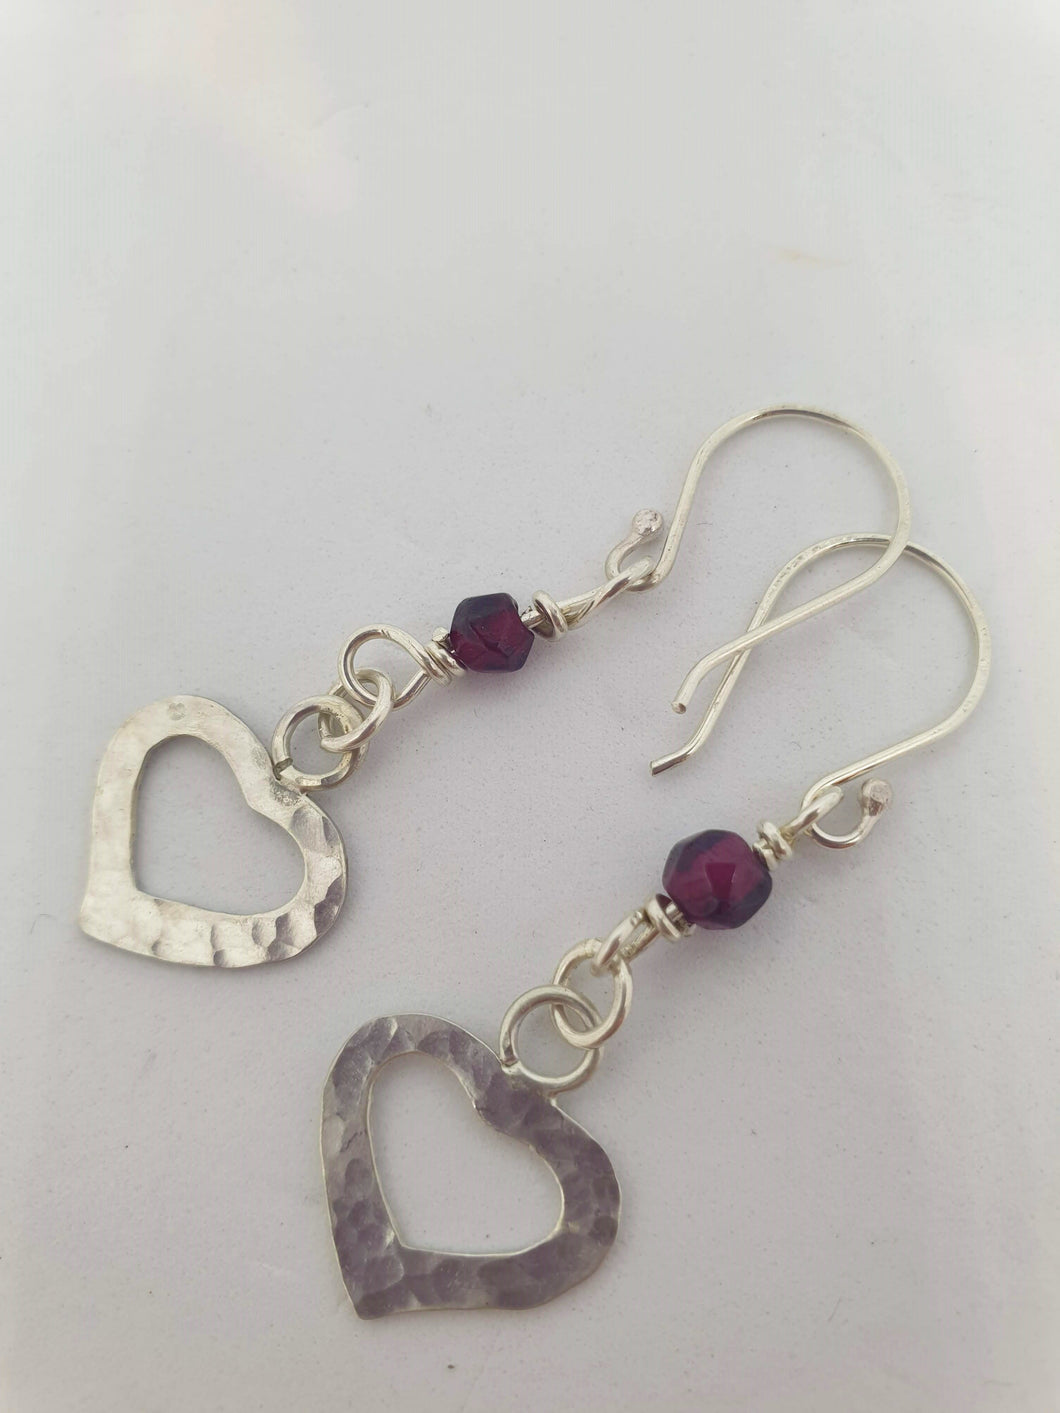 Sterling Silver Hammered Heart and Garnet Earrings by Silver Rose Jewellery-Jewellery-Atelier Crafers